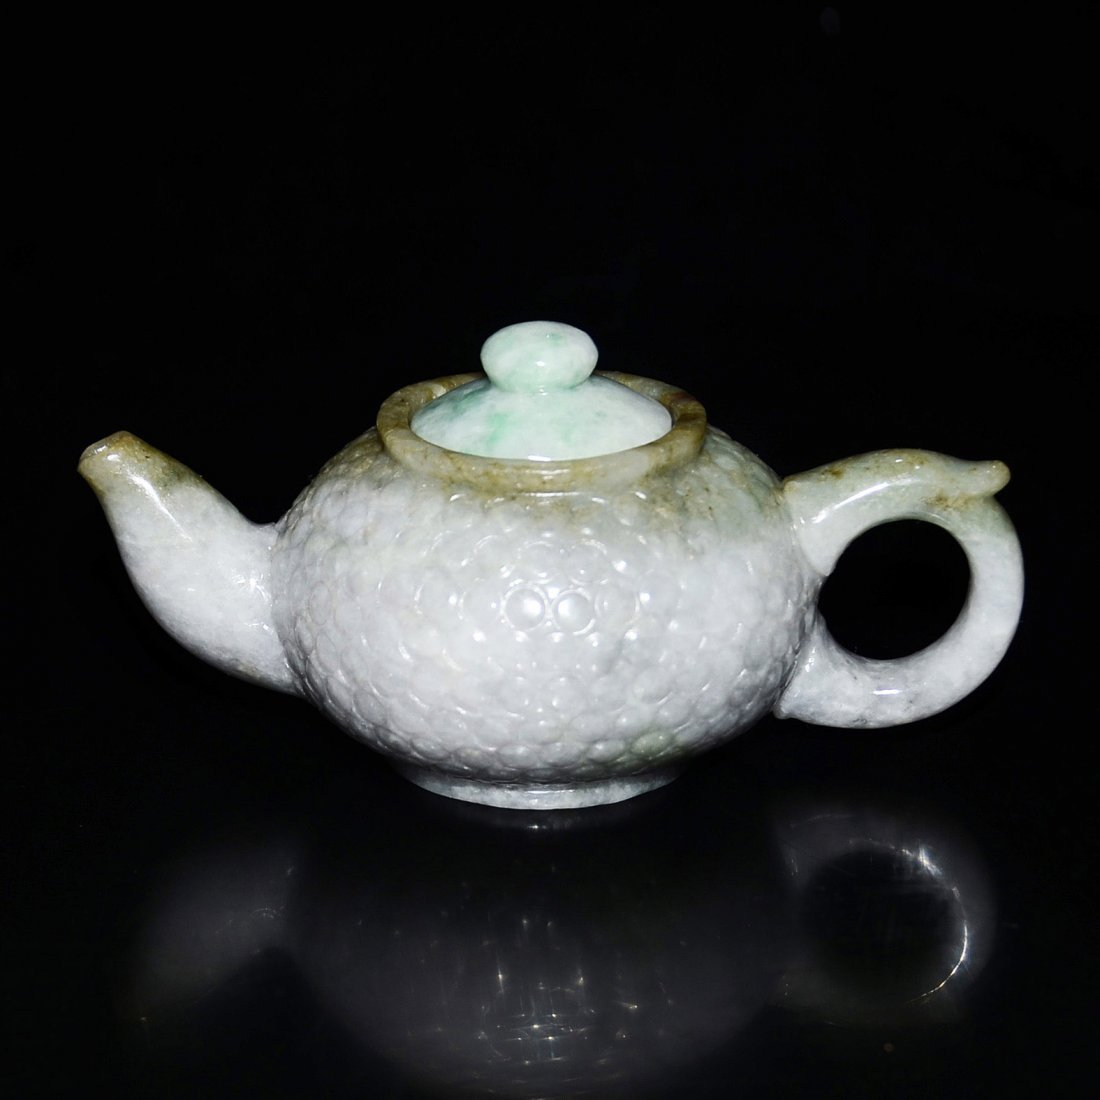 Jade Teapot Carved in Low Relief with Circular Notches